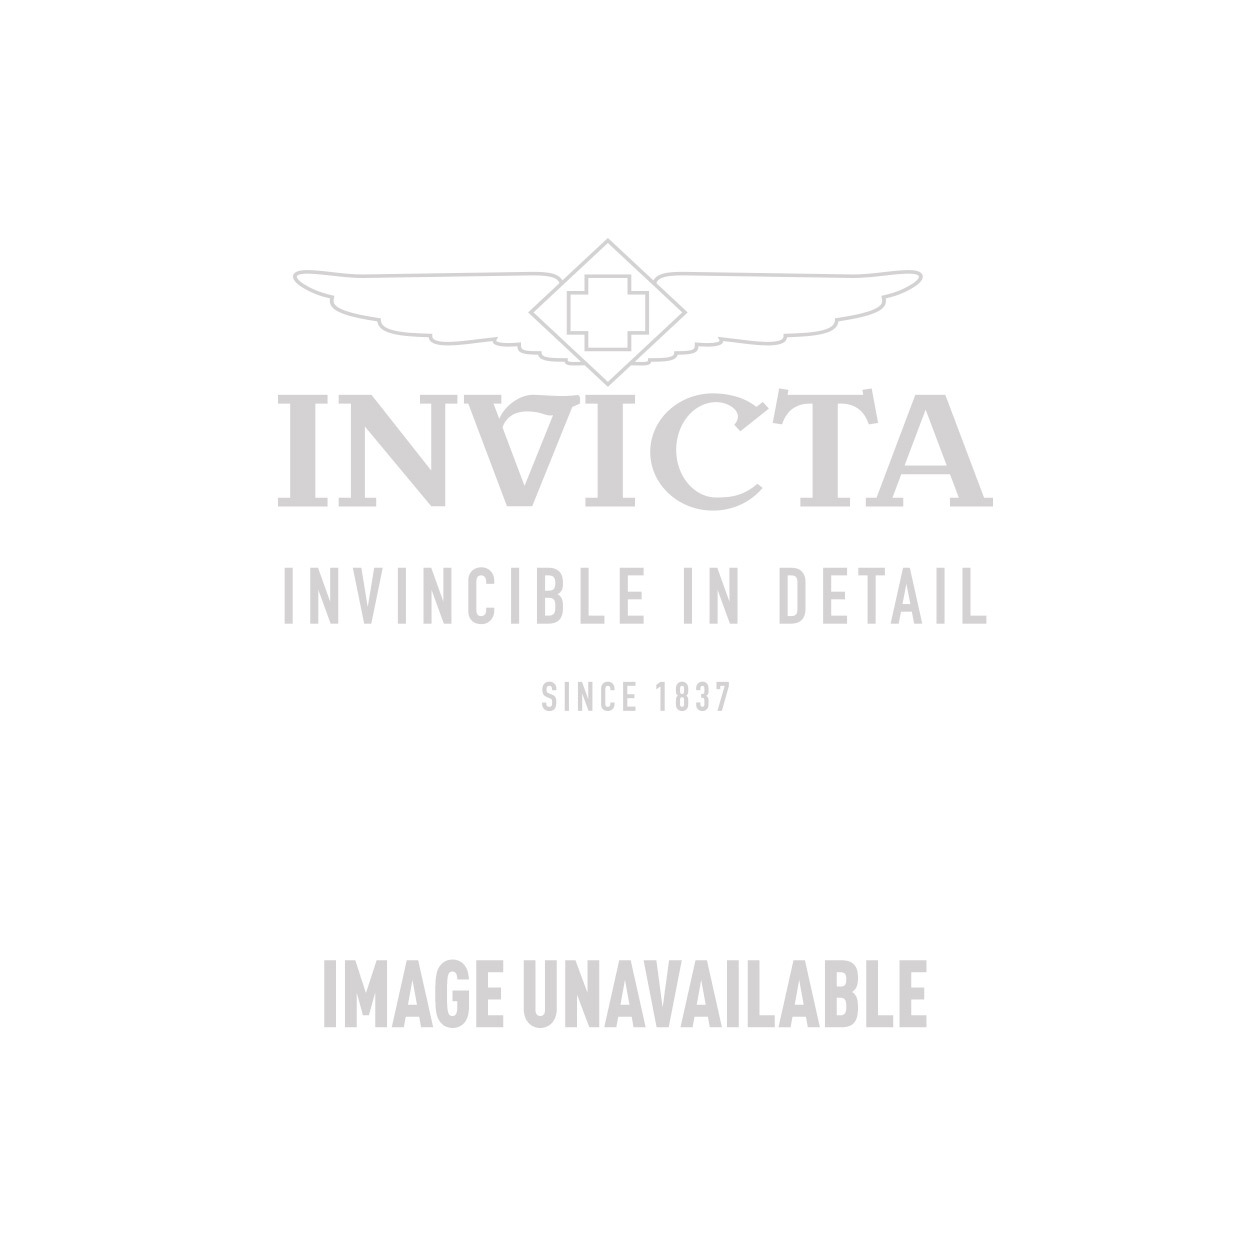 Invicta Venom Swiss Made Quartz Watch - Rose Gold, Stainless Steel case with Black tone Leather band - Model 90132